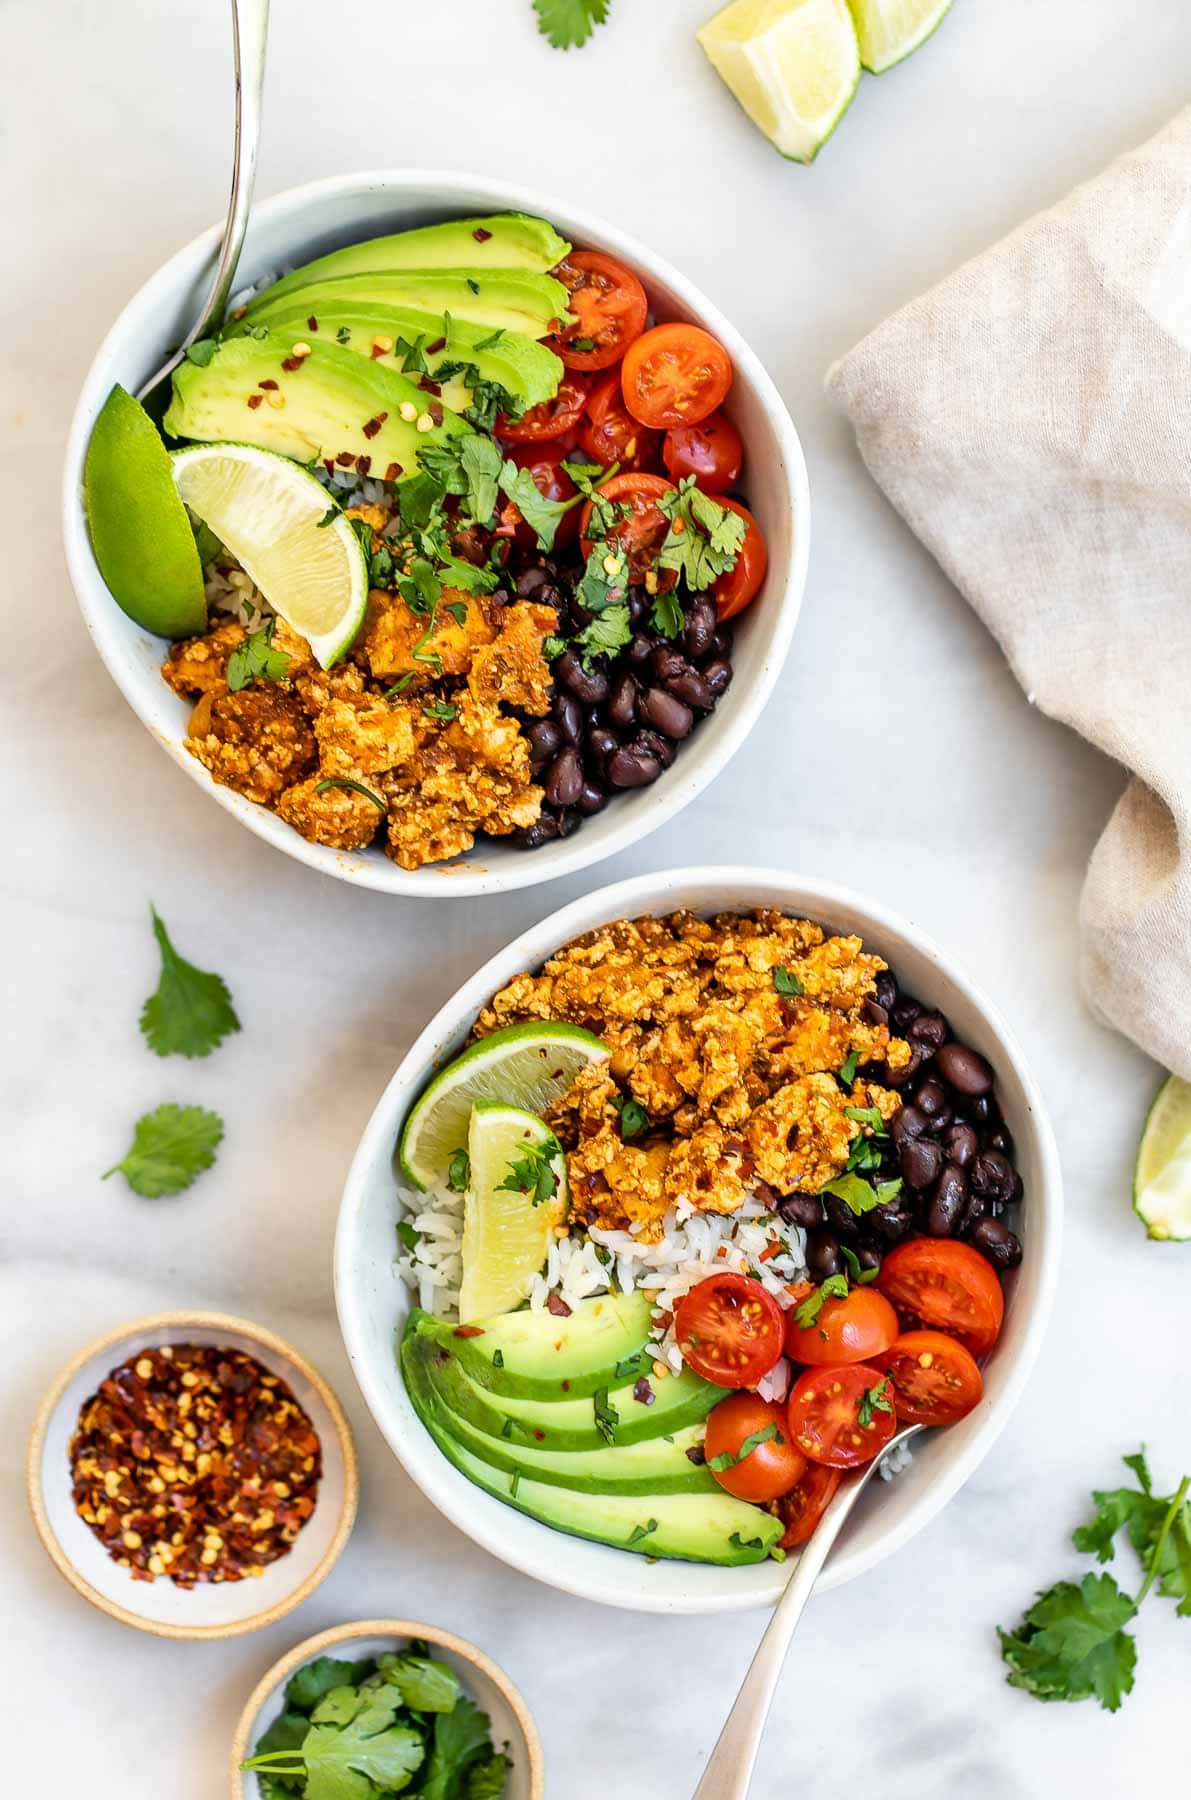 Two bowls with the sofritas recipe with rice, beans and avocado.